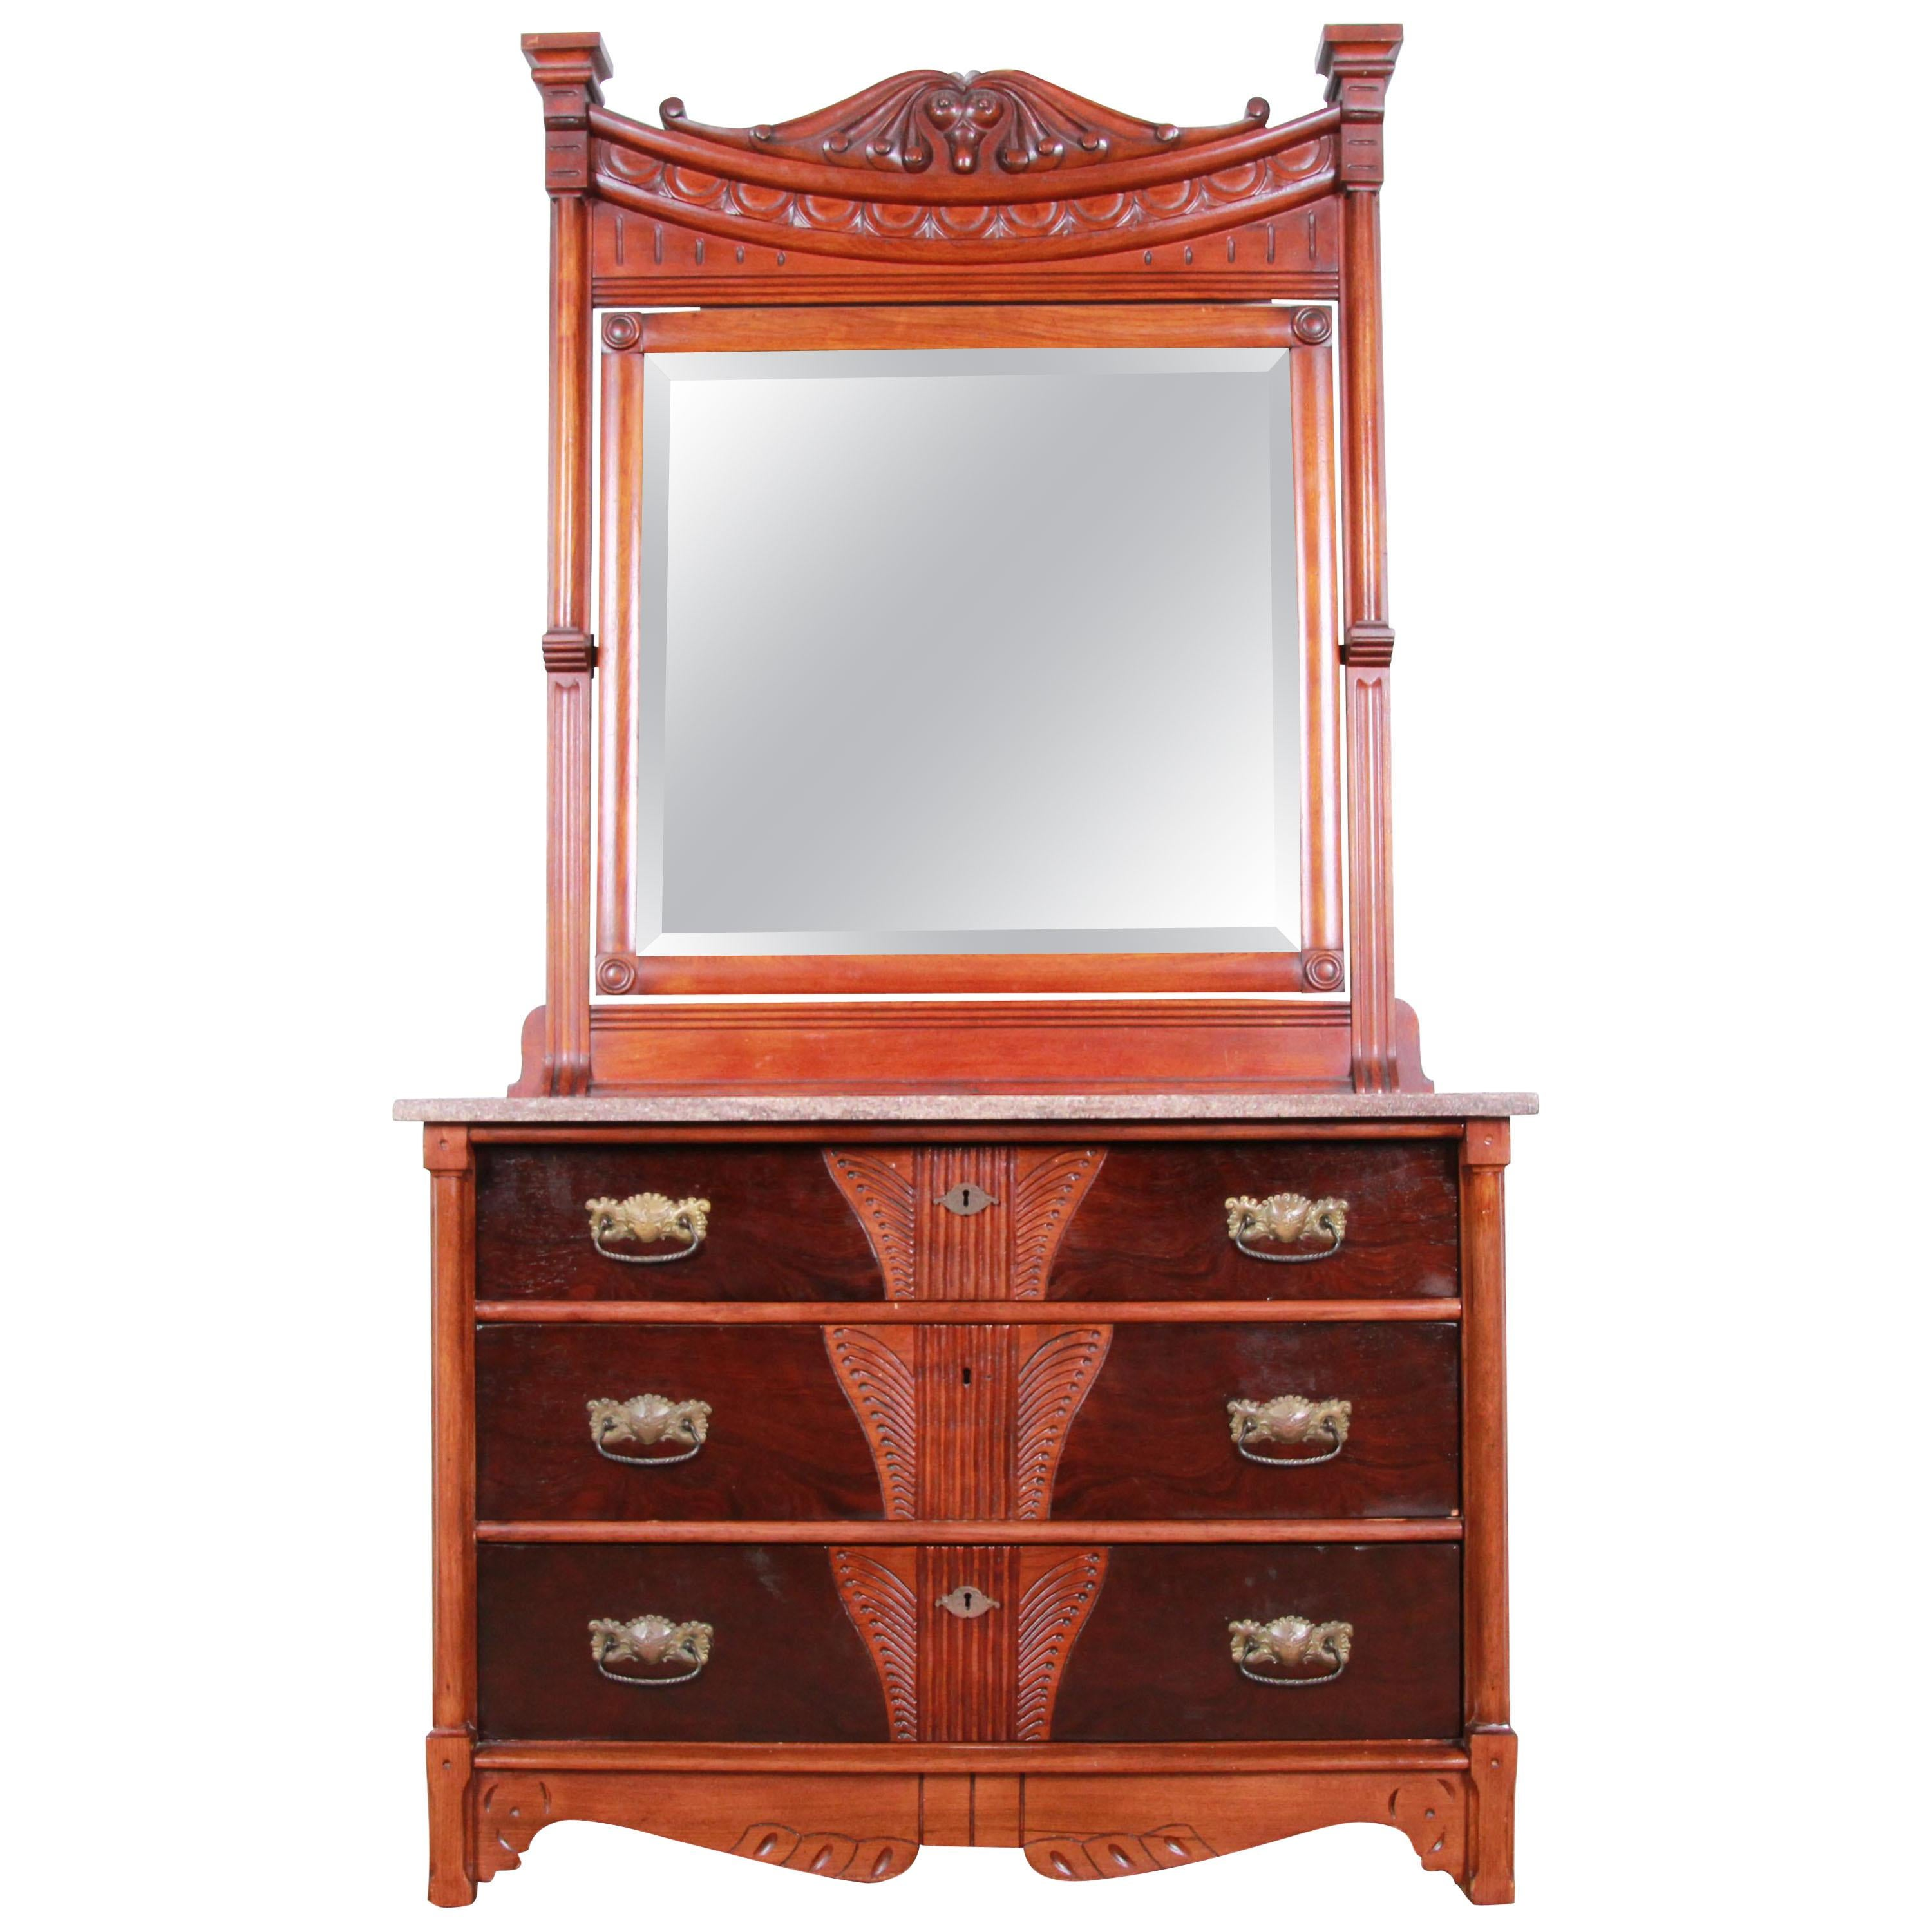 Dressers With Mirrors - 290 For Sale on 1stdibs